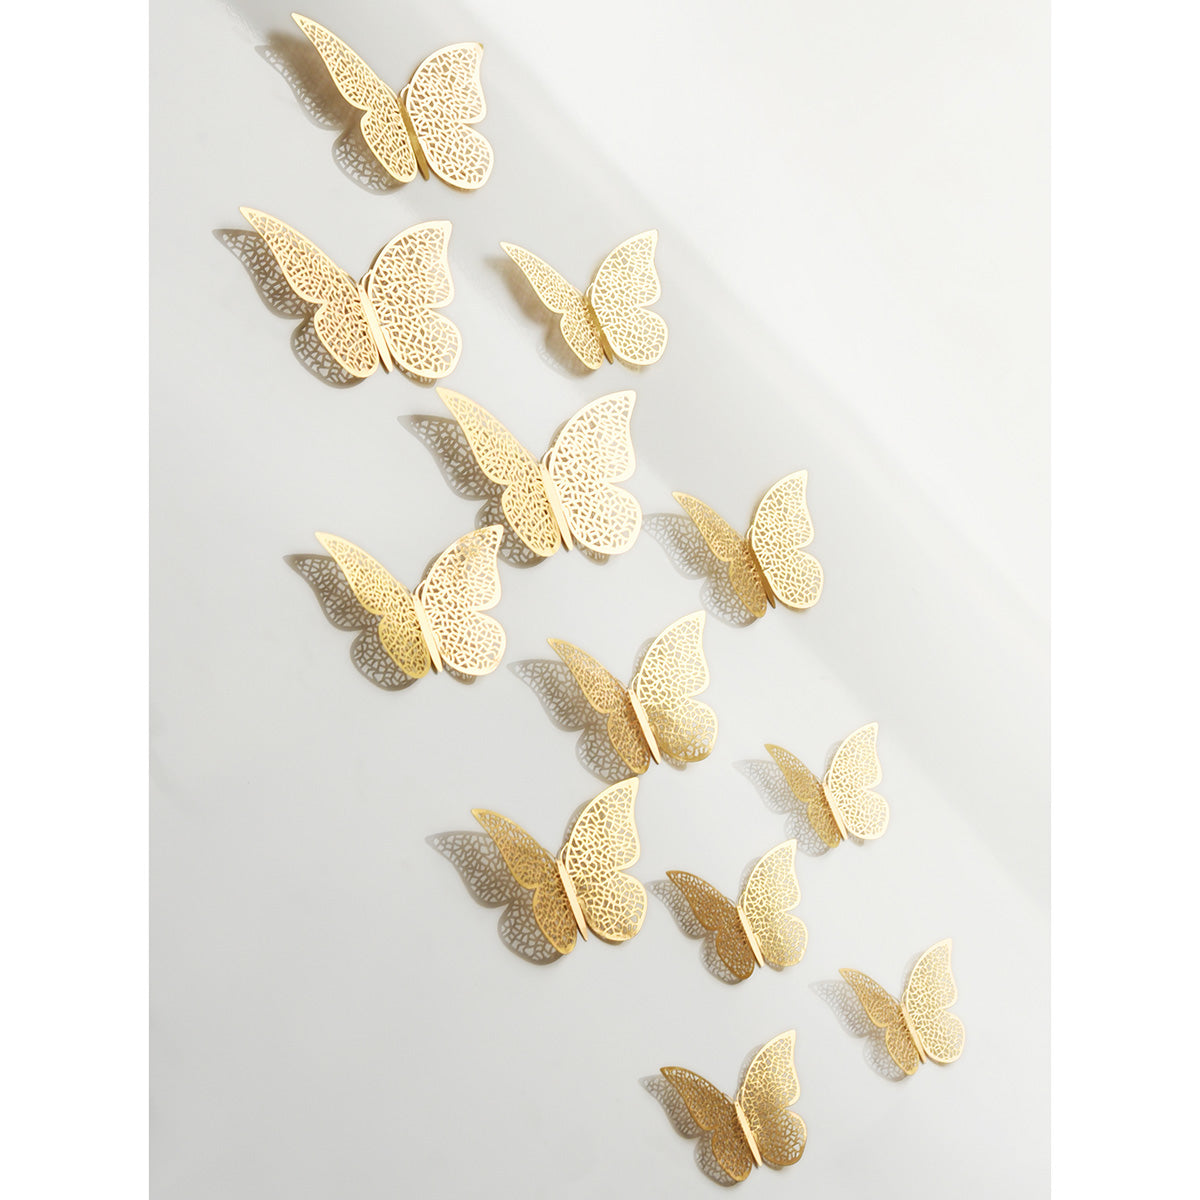 Gold Butterflies Wall Decorations Set - Nets Hollow Design